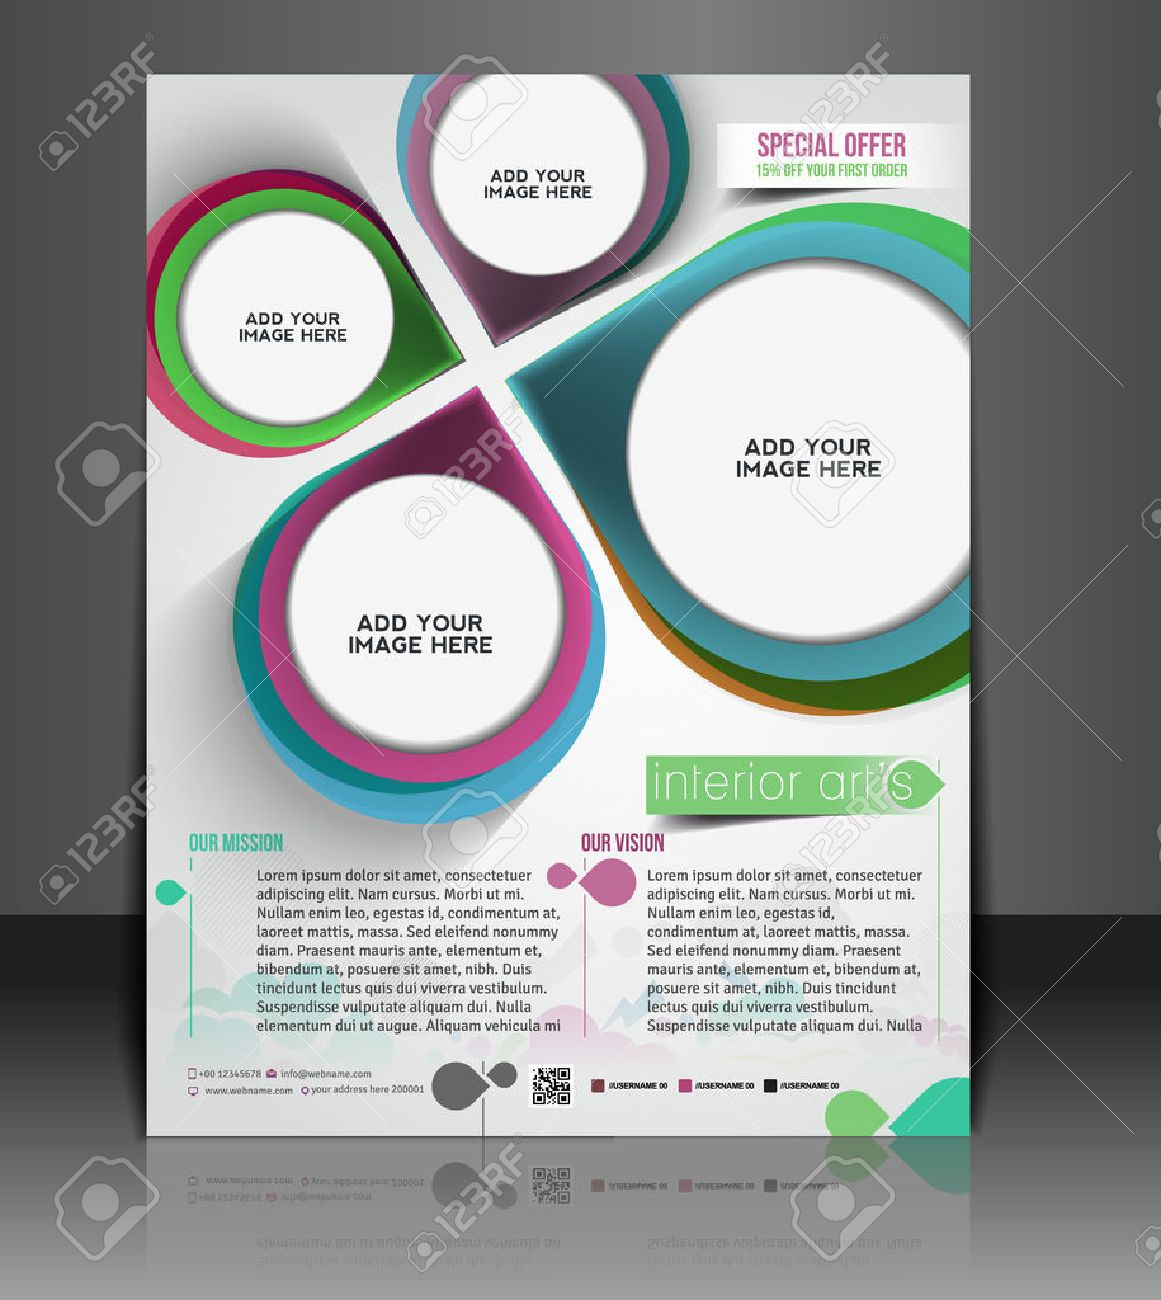 Architecture & Interior Decorator Flyer Template Royalty Free ...